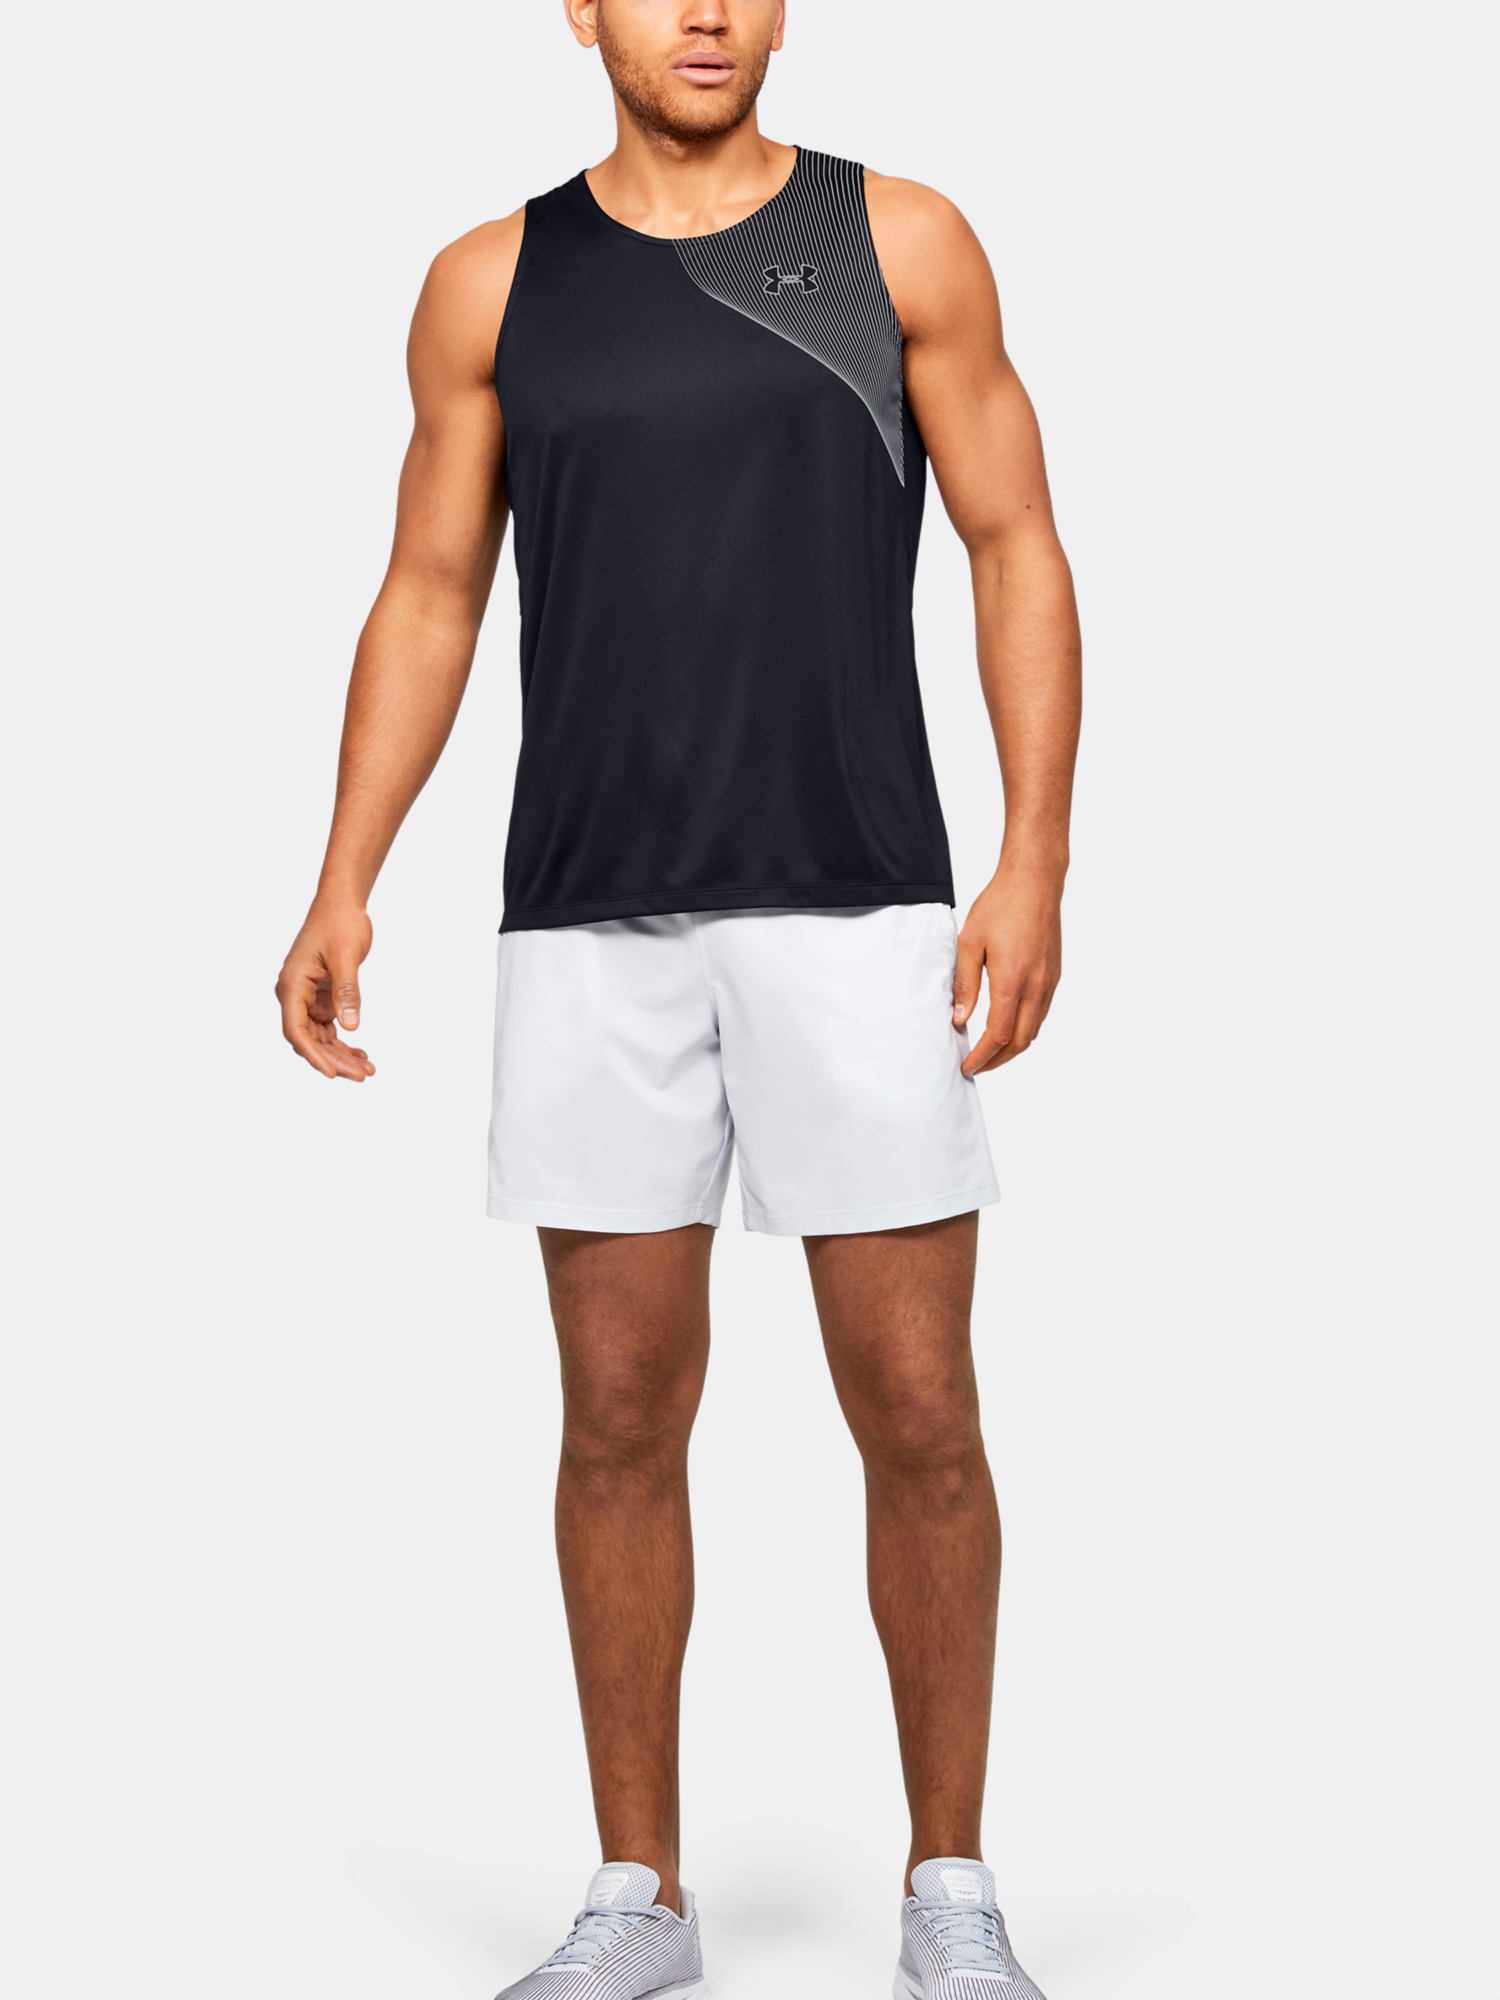 Tielko Under Armour M  Qlifier ISO-CHILL Singlet-BLK (6)